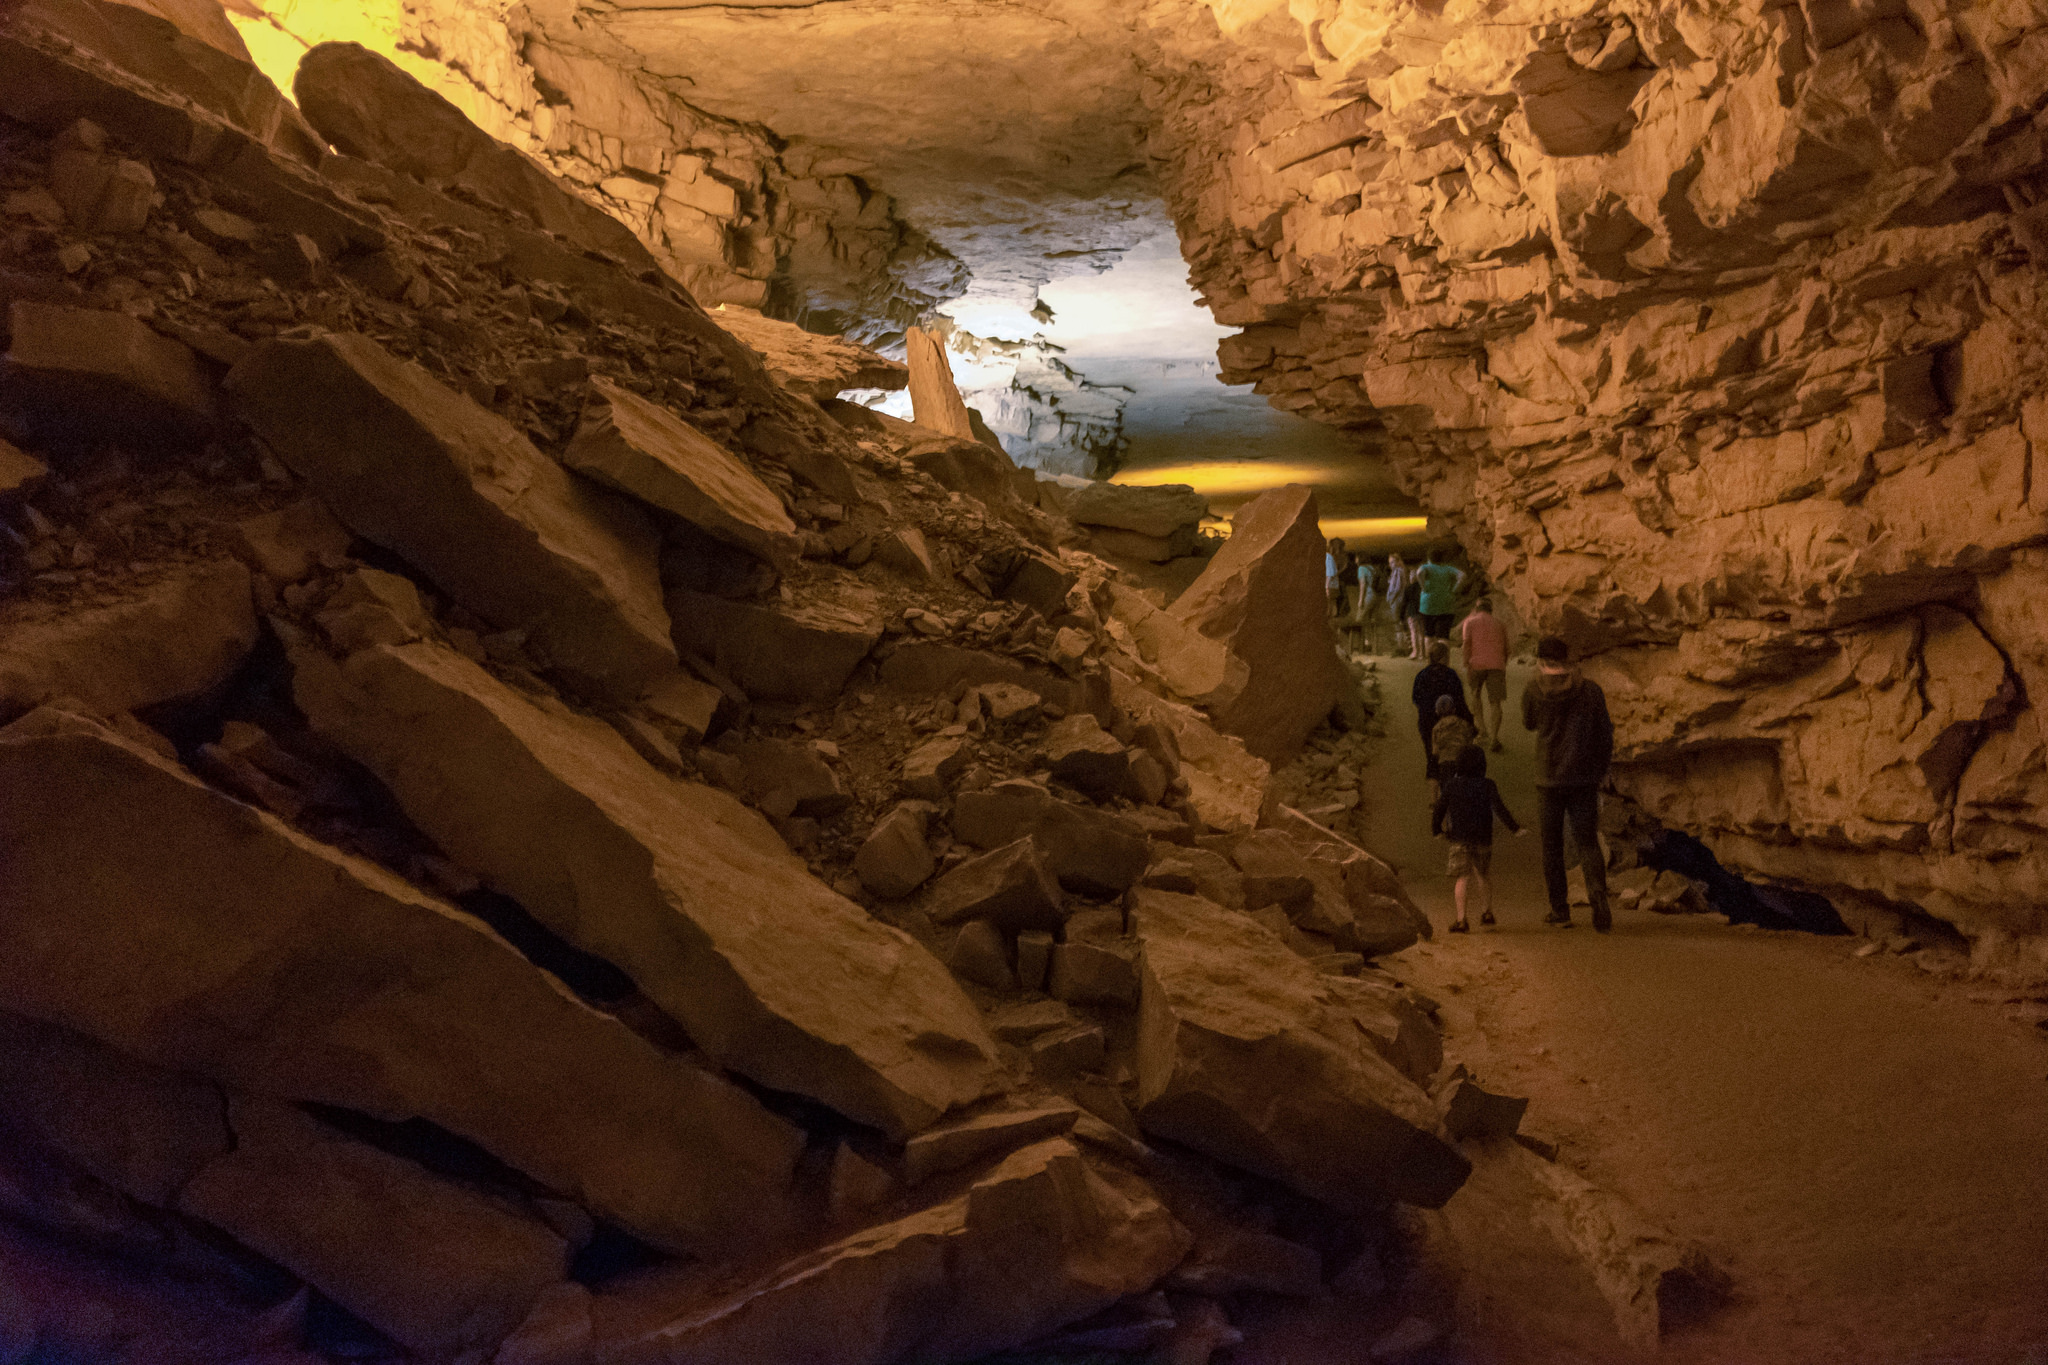 Image: I took this deep under the earth in Mammoth Cave National Park, 23mm, f/2.0, 1/20 second, ISO...